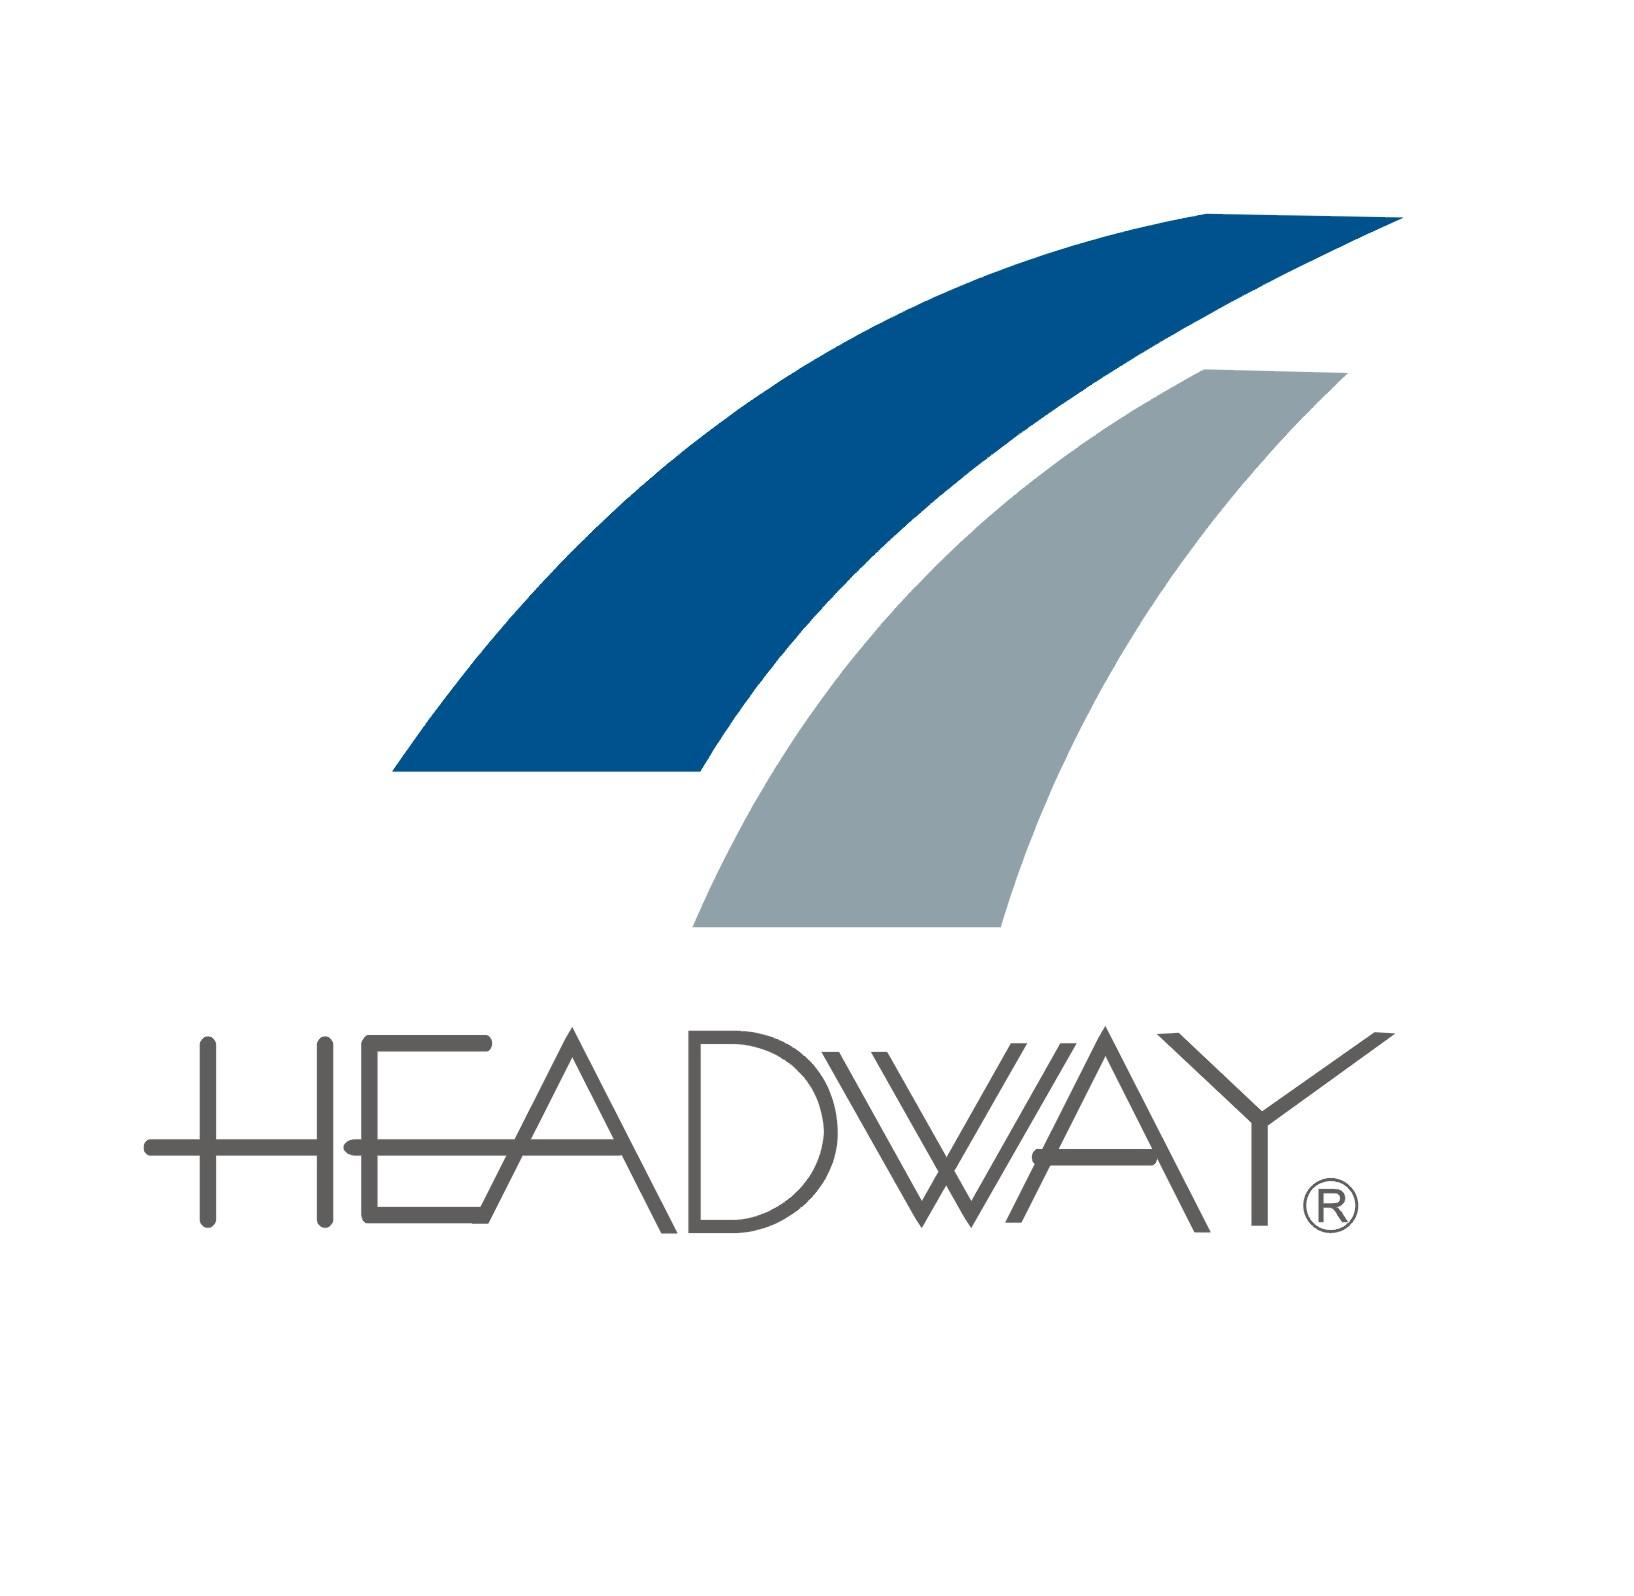 Headway Group(PTY)LTD